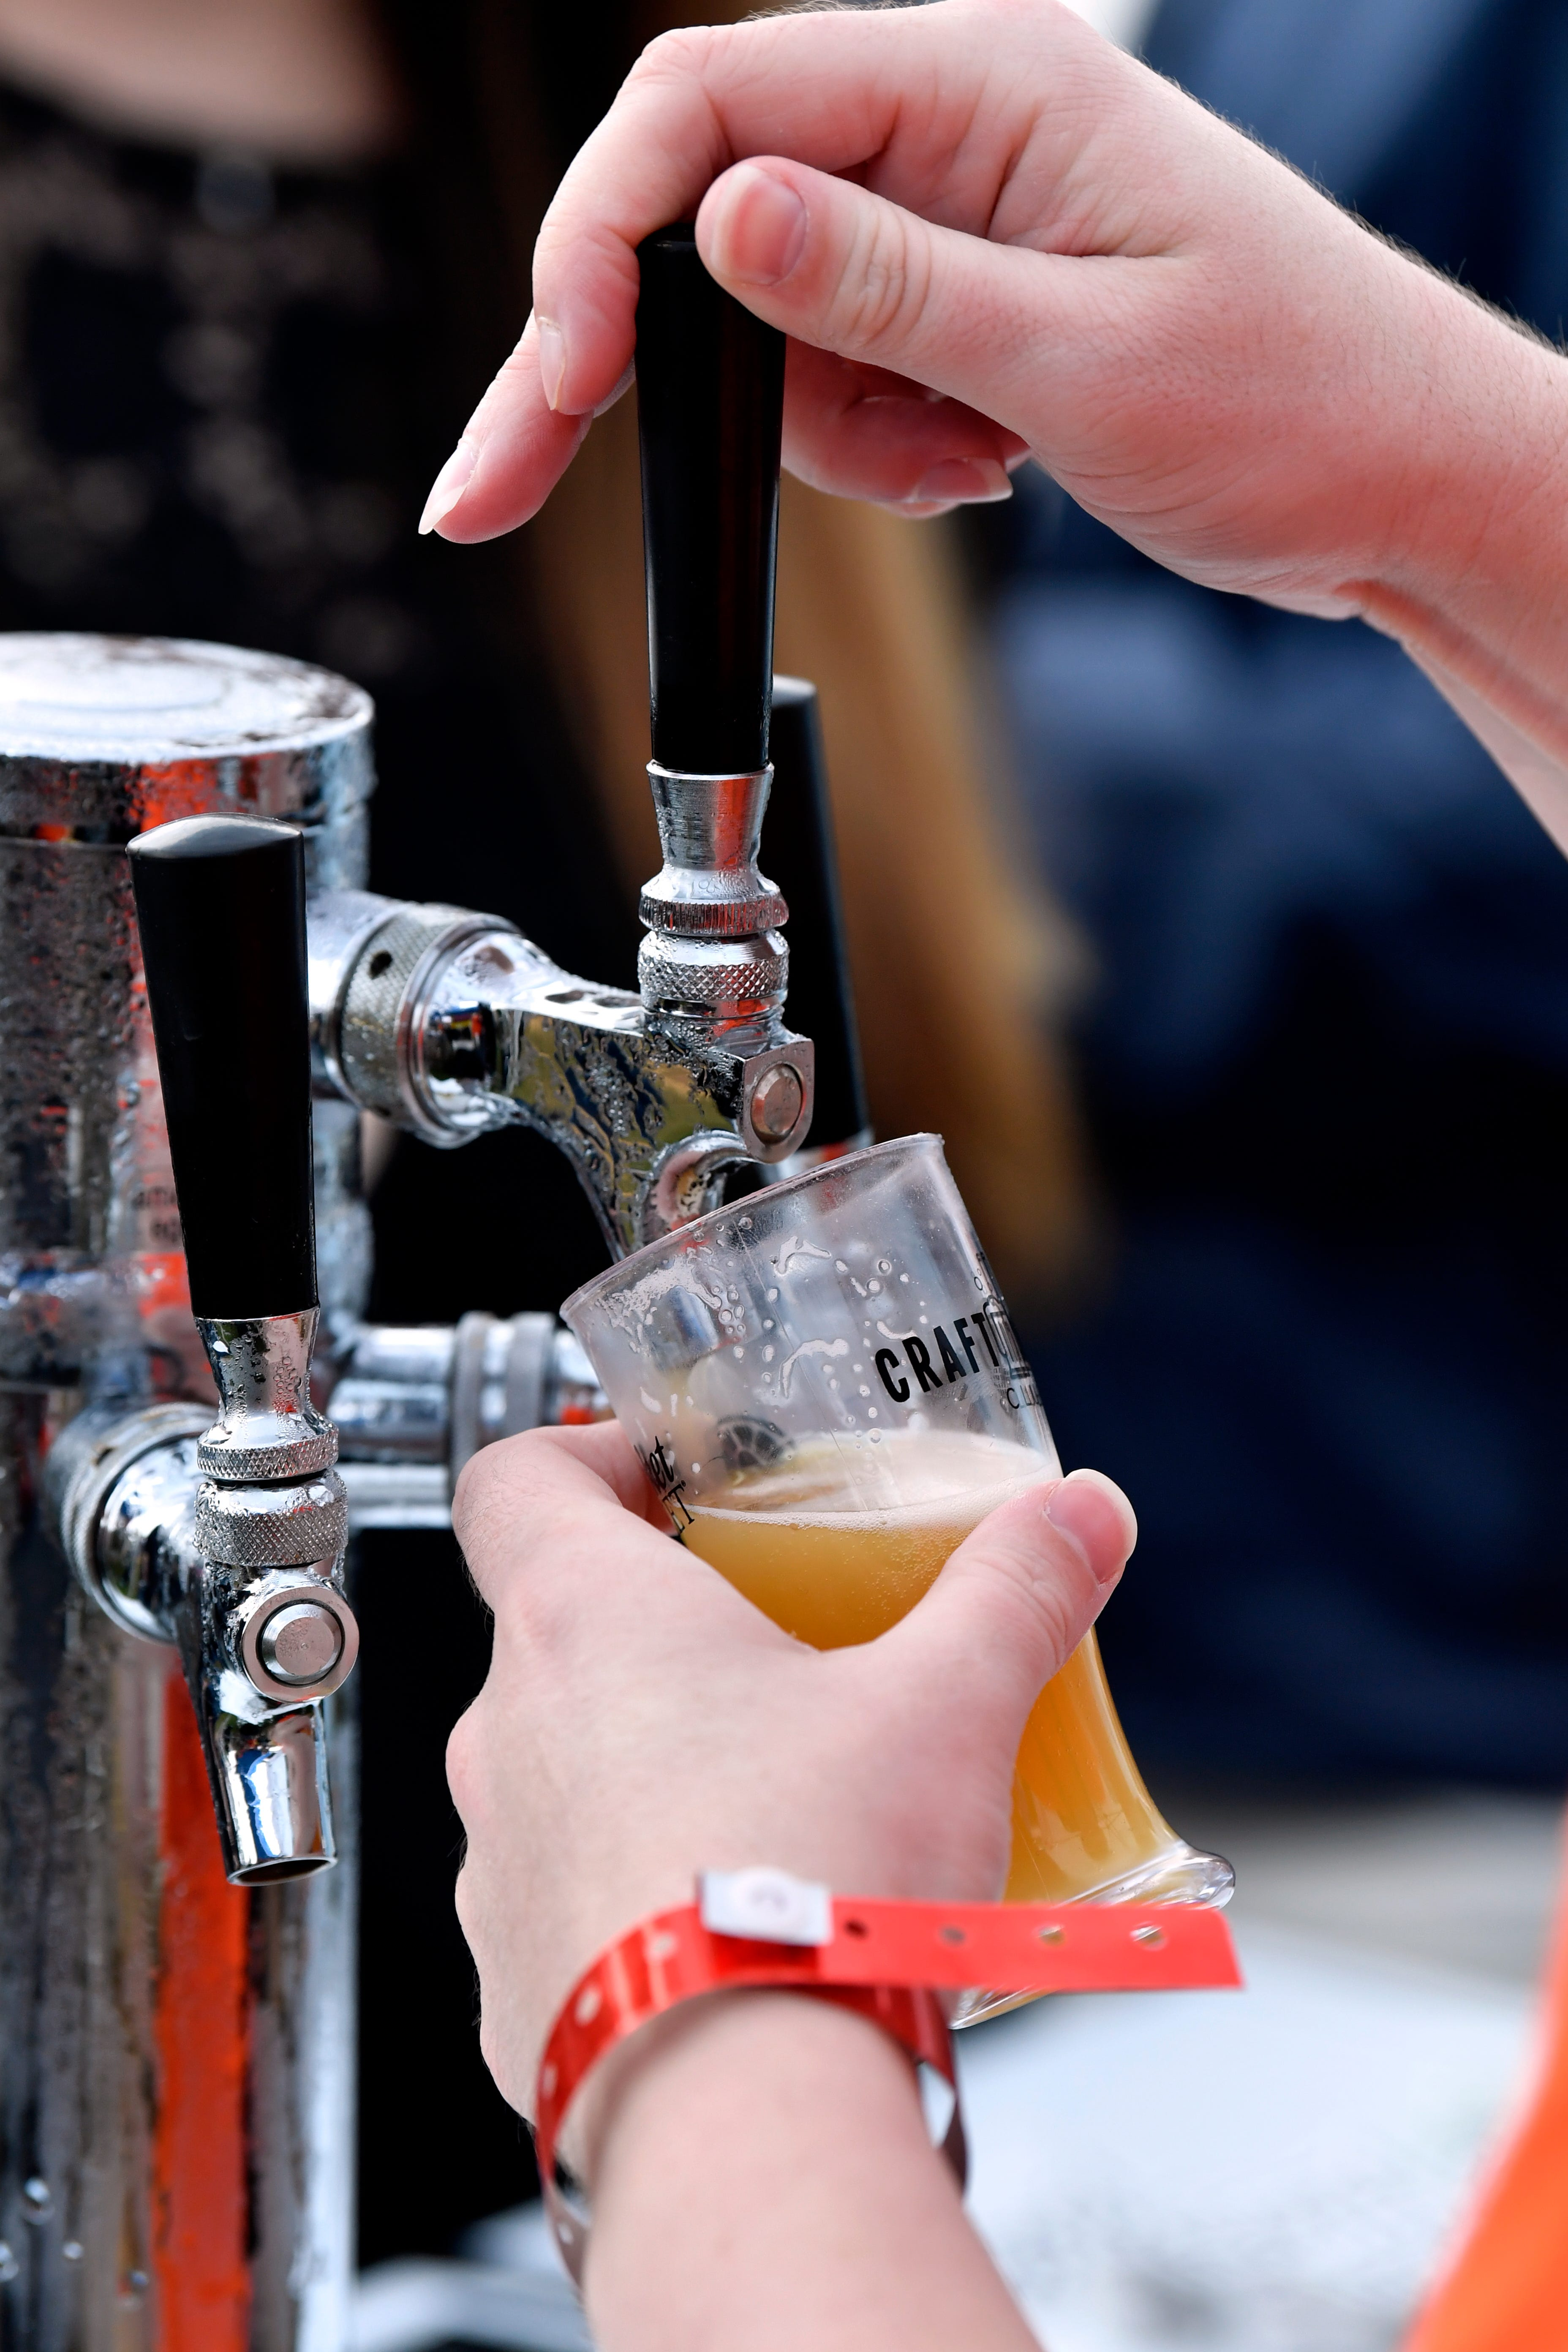 A sample glass is filled at the Grain Theory tent during Saturday's Abilene Beer Summit.